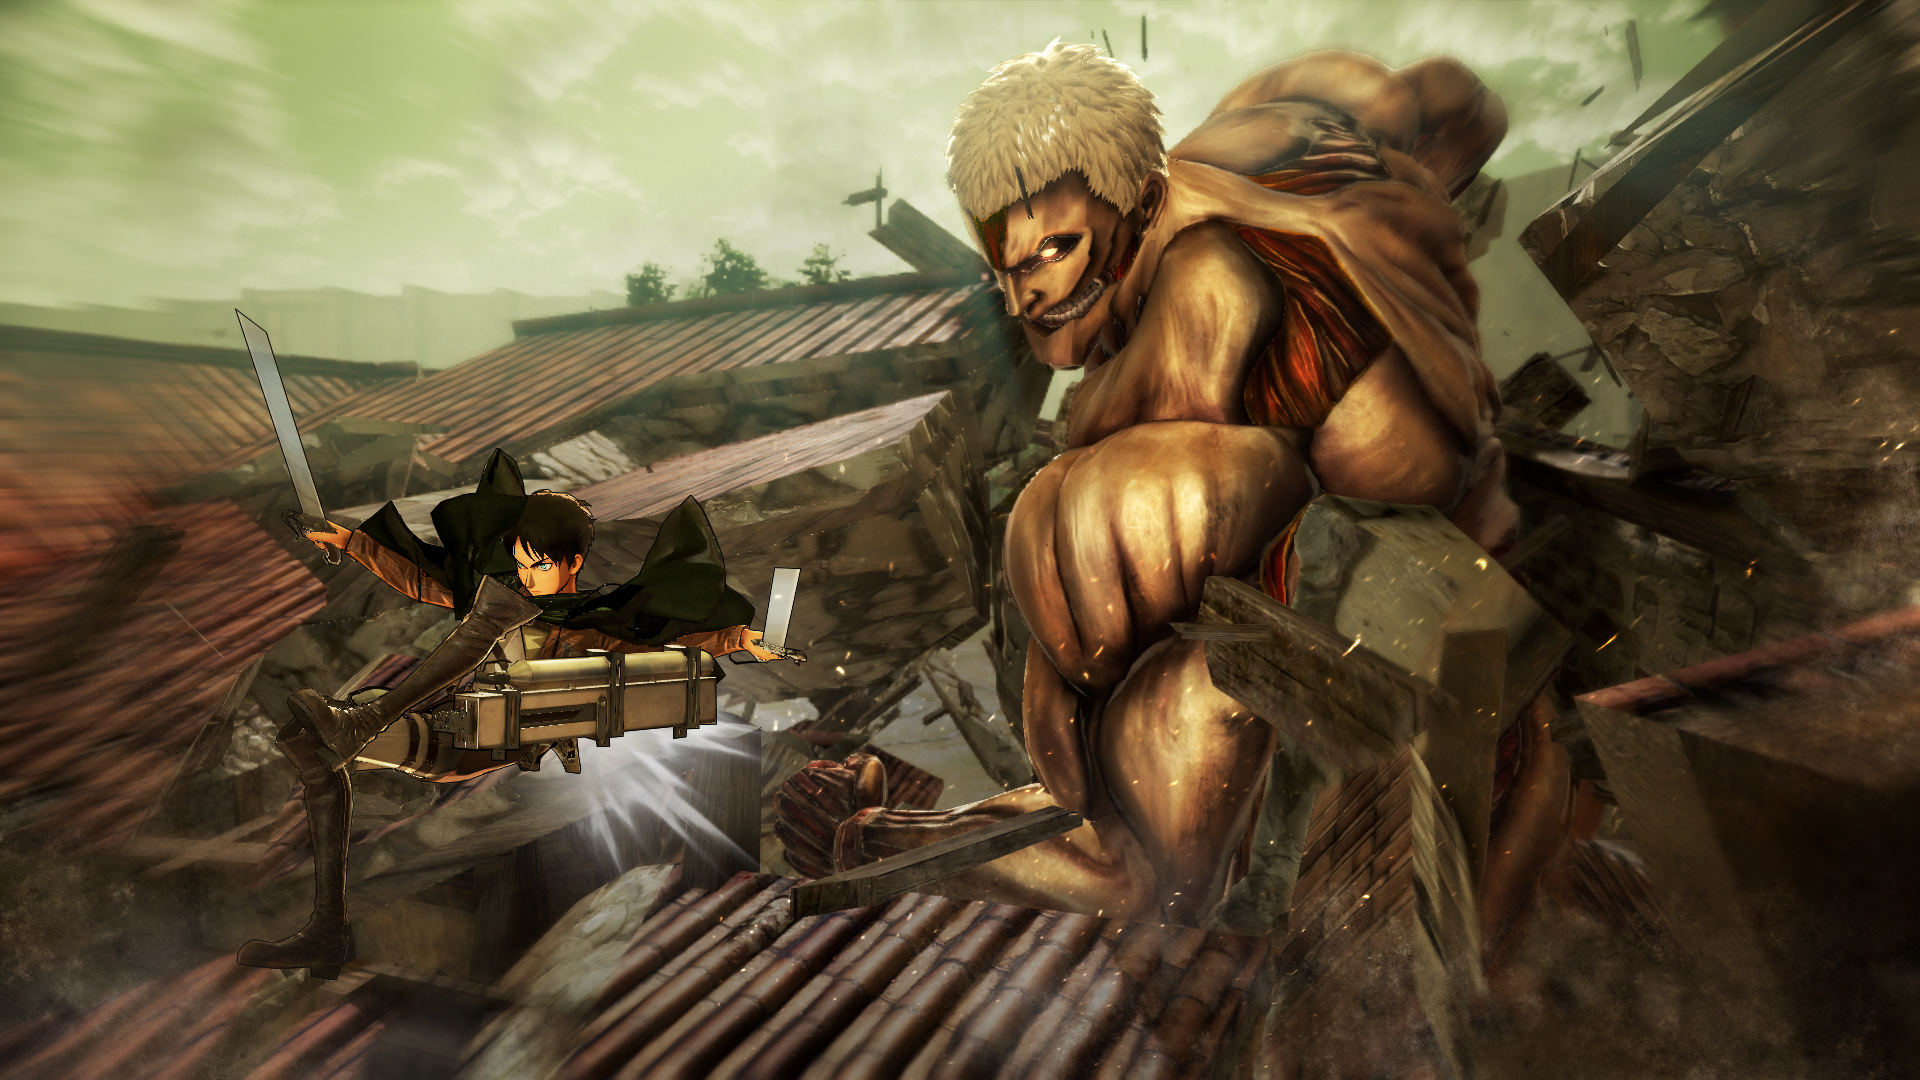 Bago Games Preview - Attack on Titan: Wings of Freedom on PC